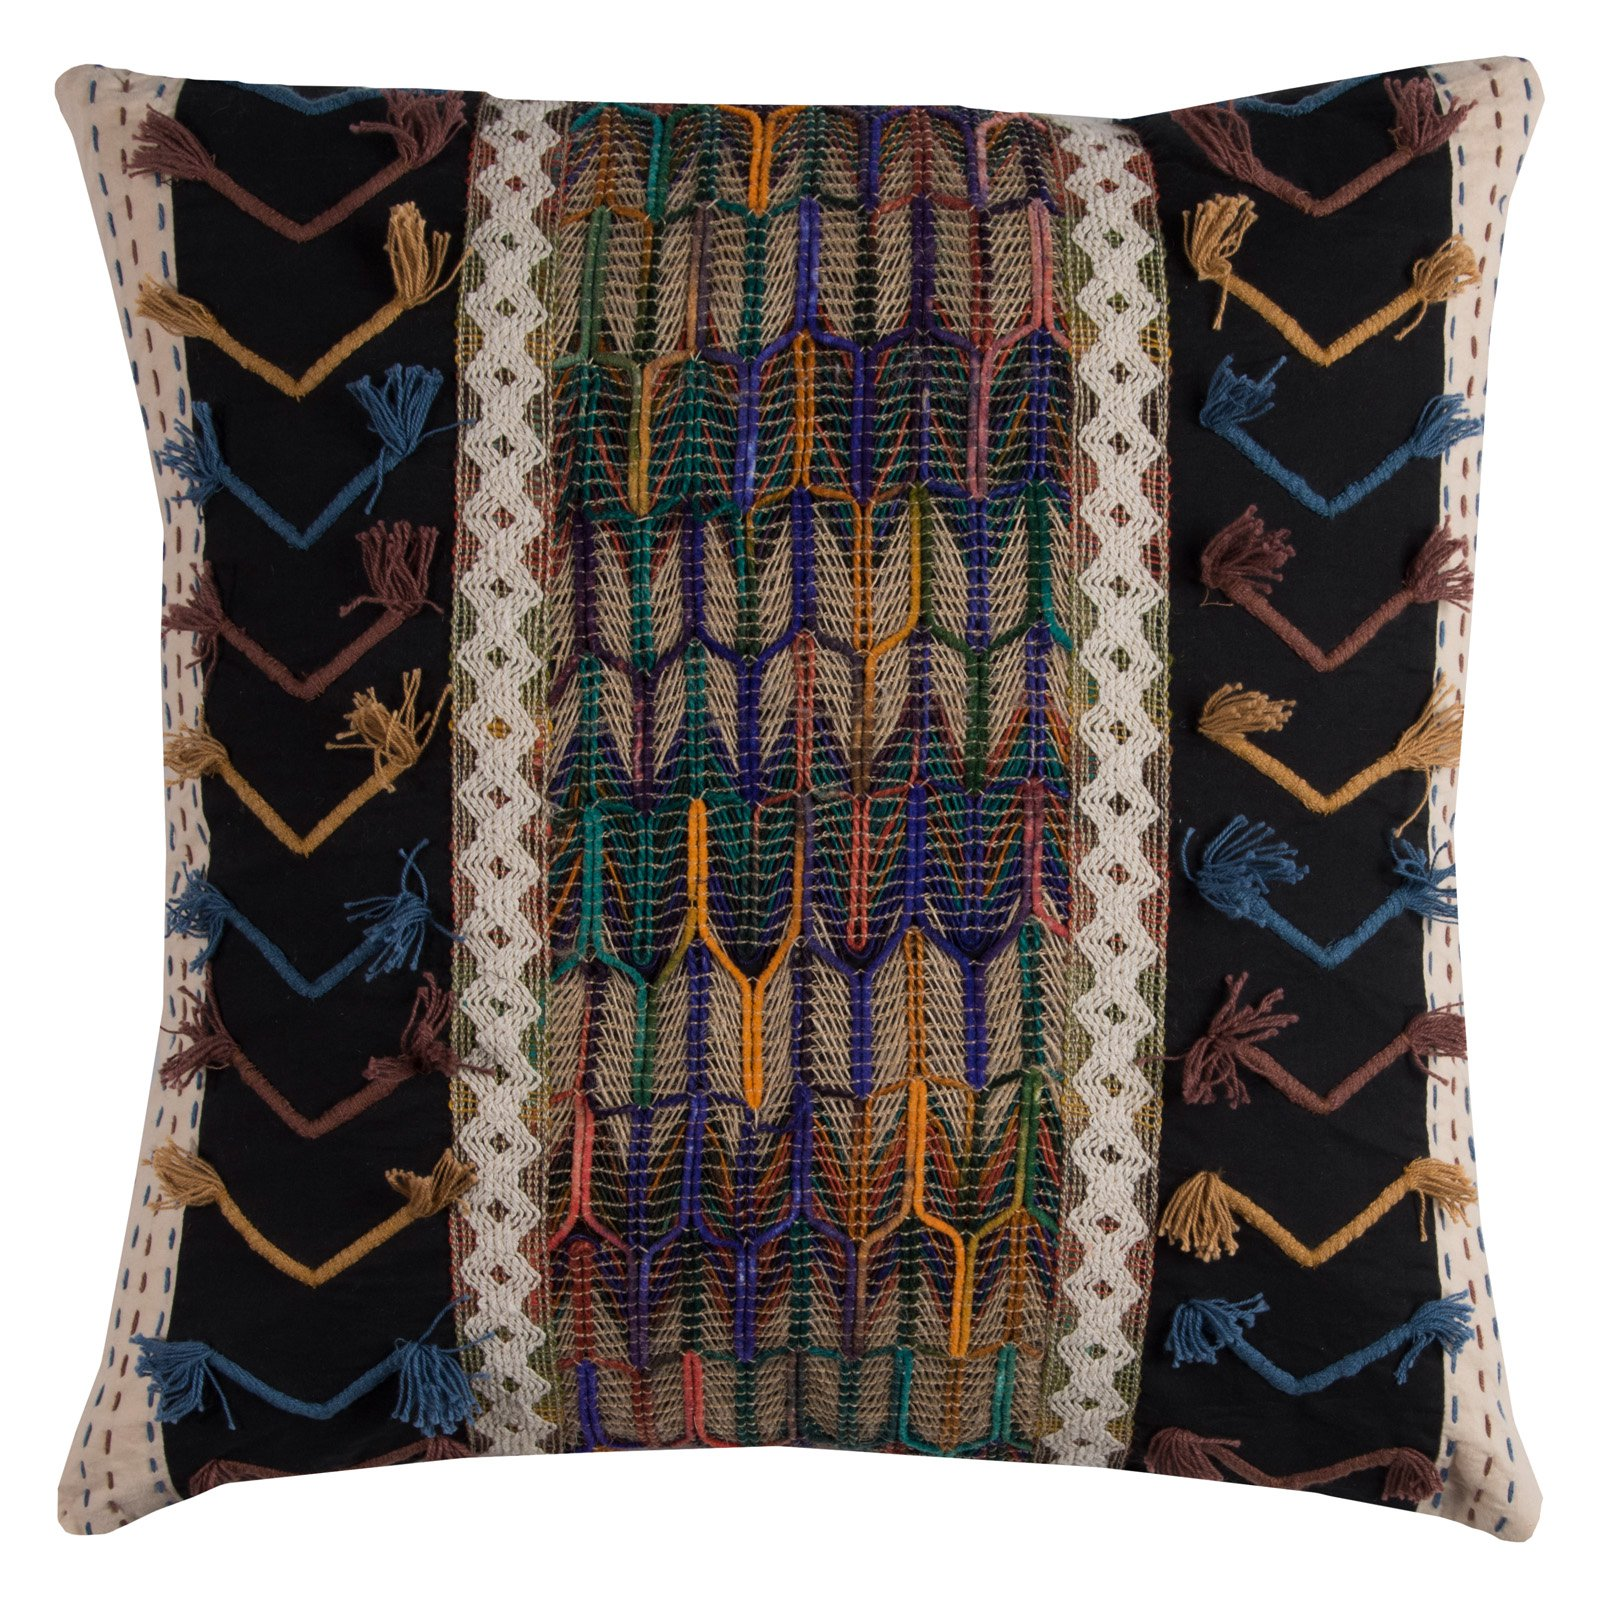 "Rizzy Home TRIBAL MIXED MEDIA20"" x 20""Cottondecorative filled pillow"